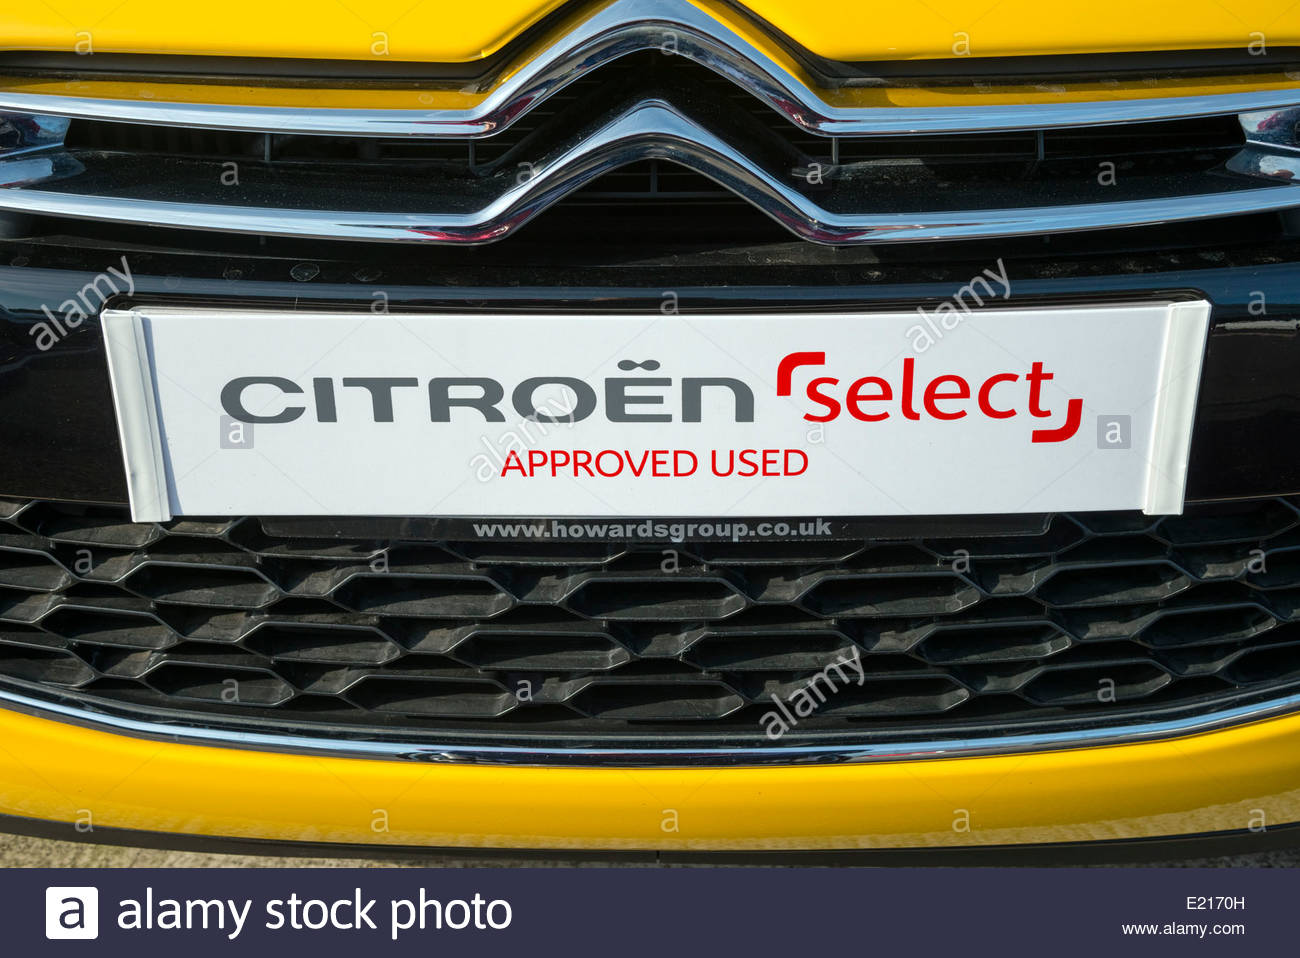 Citroen select approved used cars, UK. - Stock Image